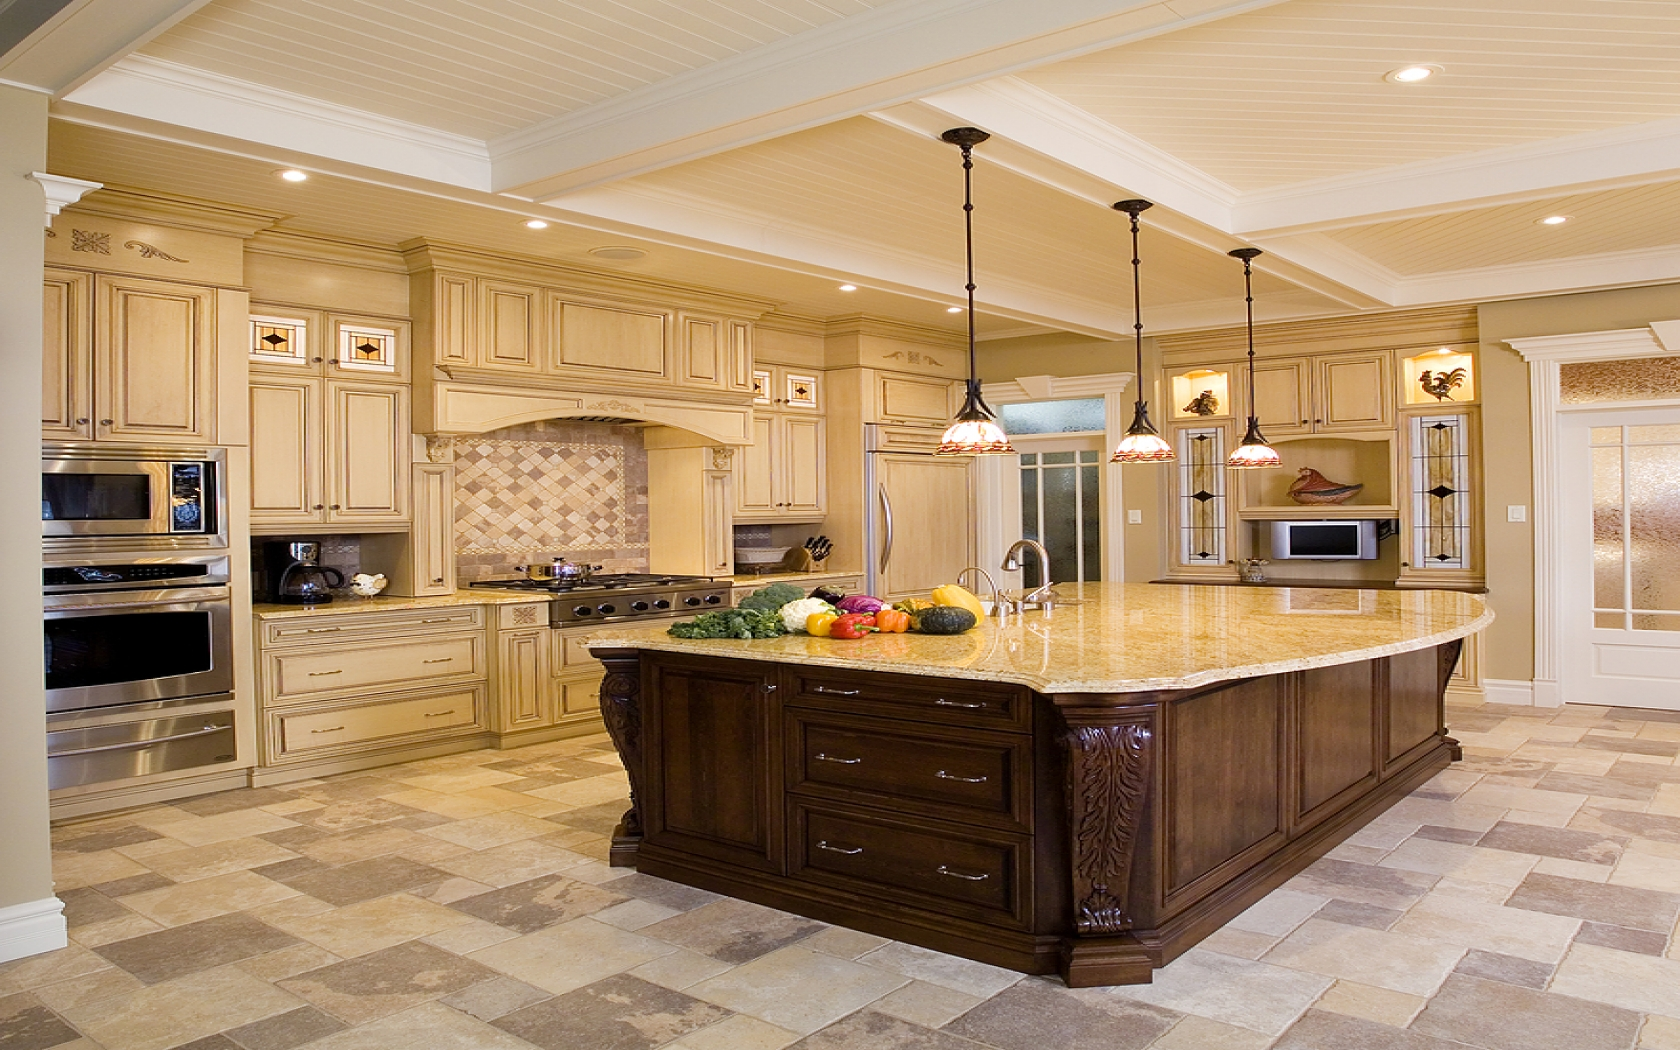 Kitchen Ideas 101 A Built In Kitchen Doesn T Have To Look Cheap